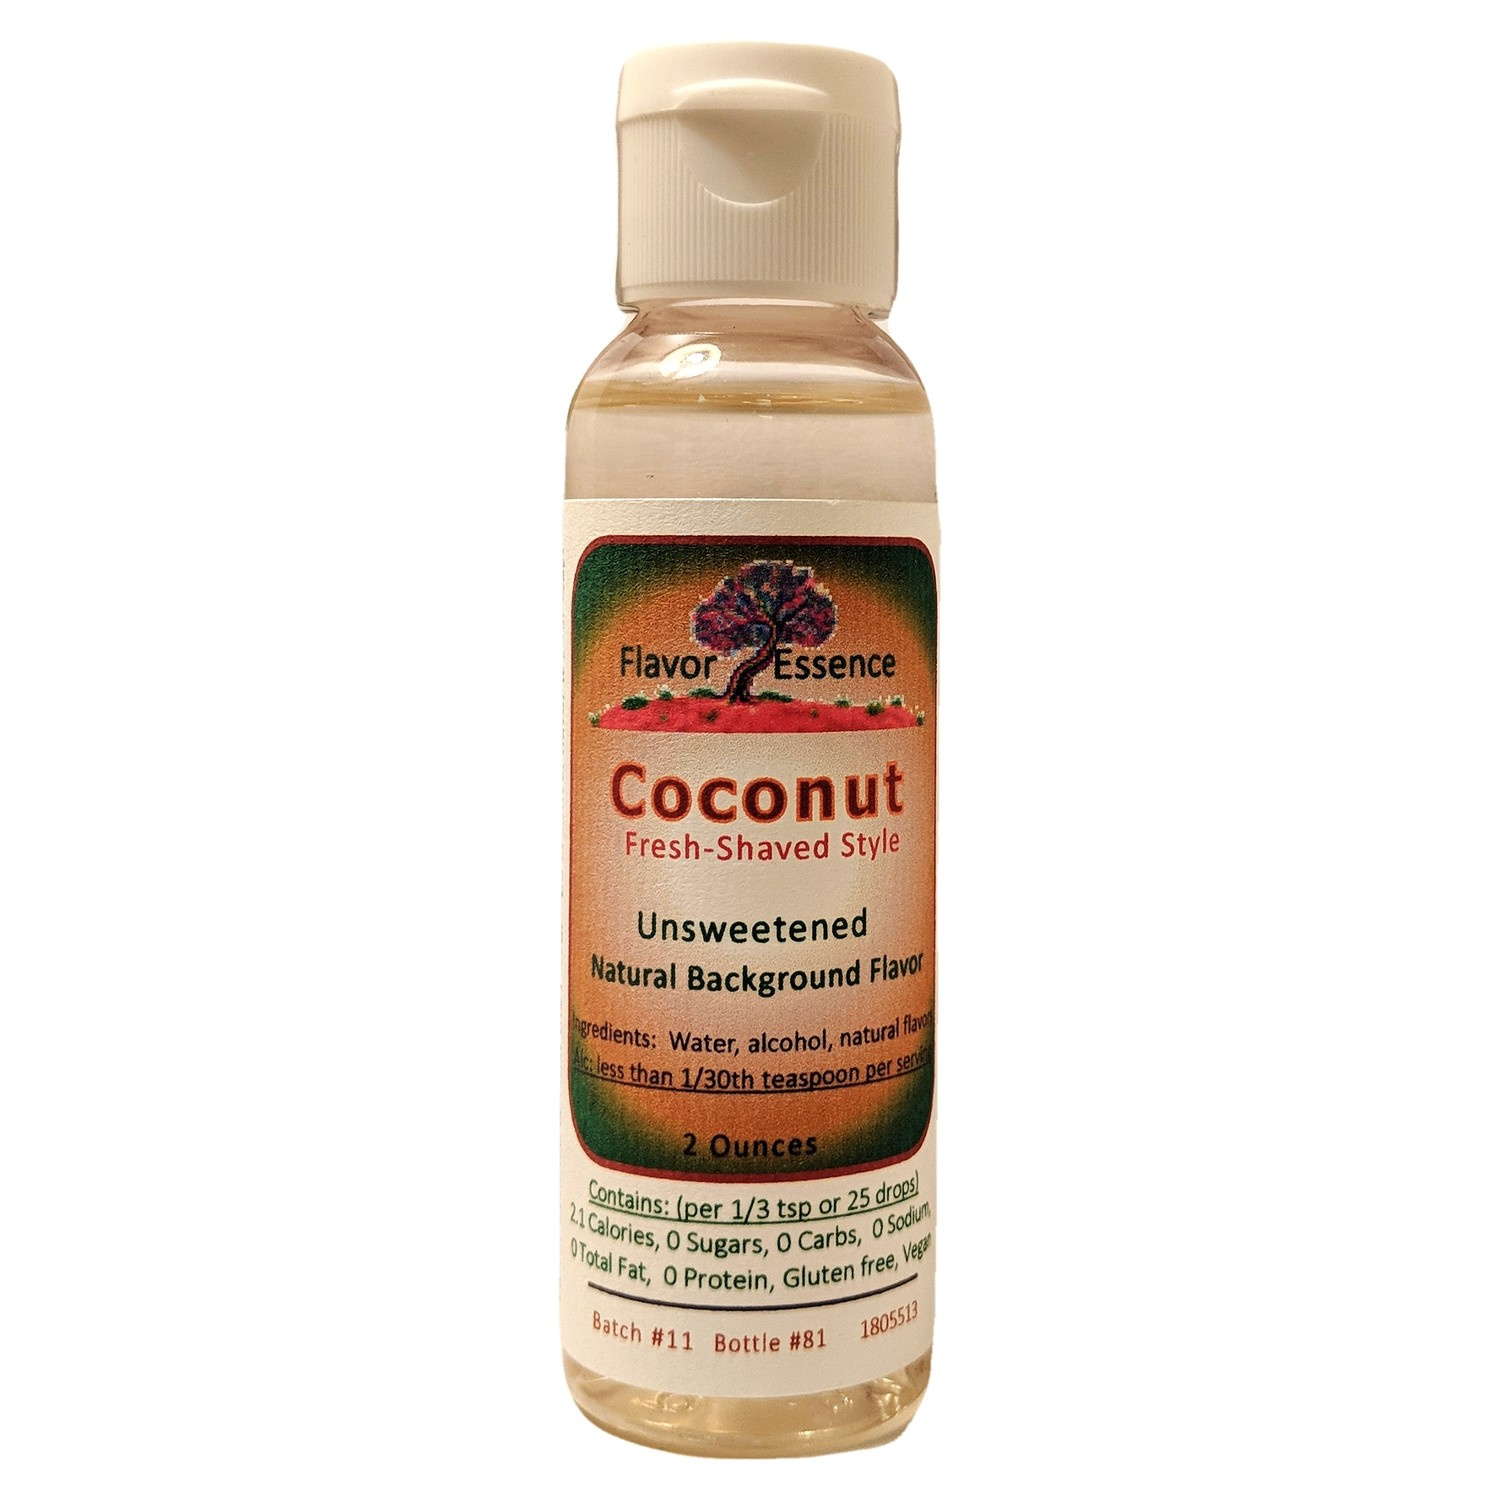 Flavor Essence COCONUT (Fresh Shaved Style) -Unsweetened Natural Flavoring